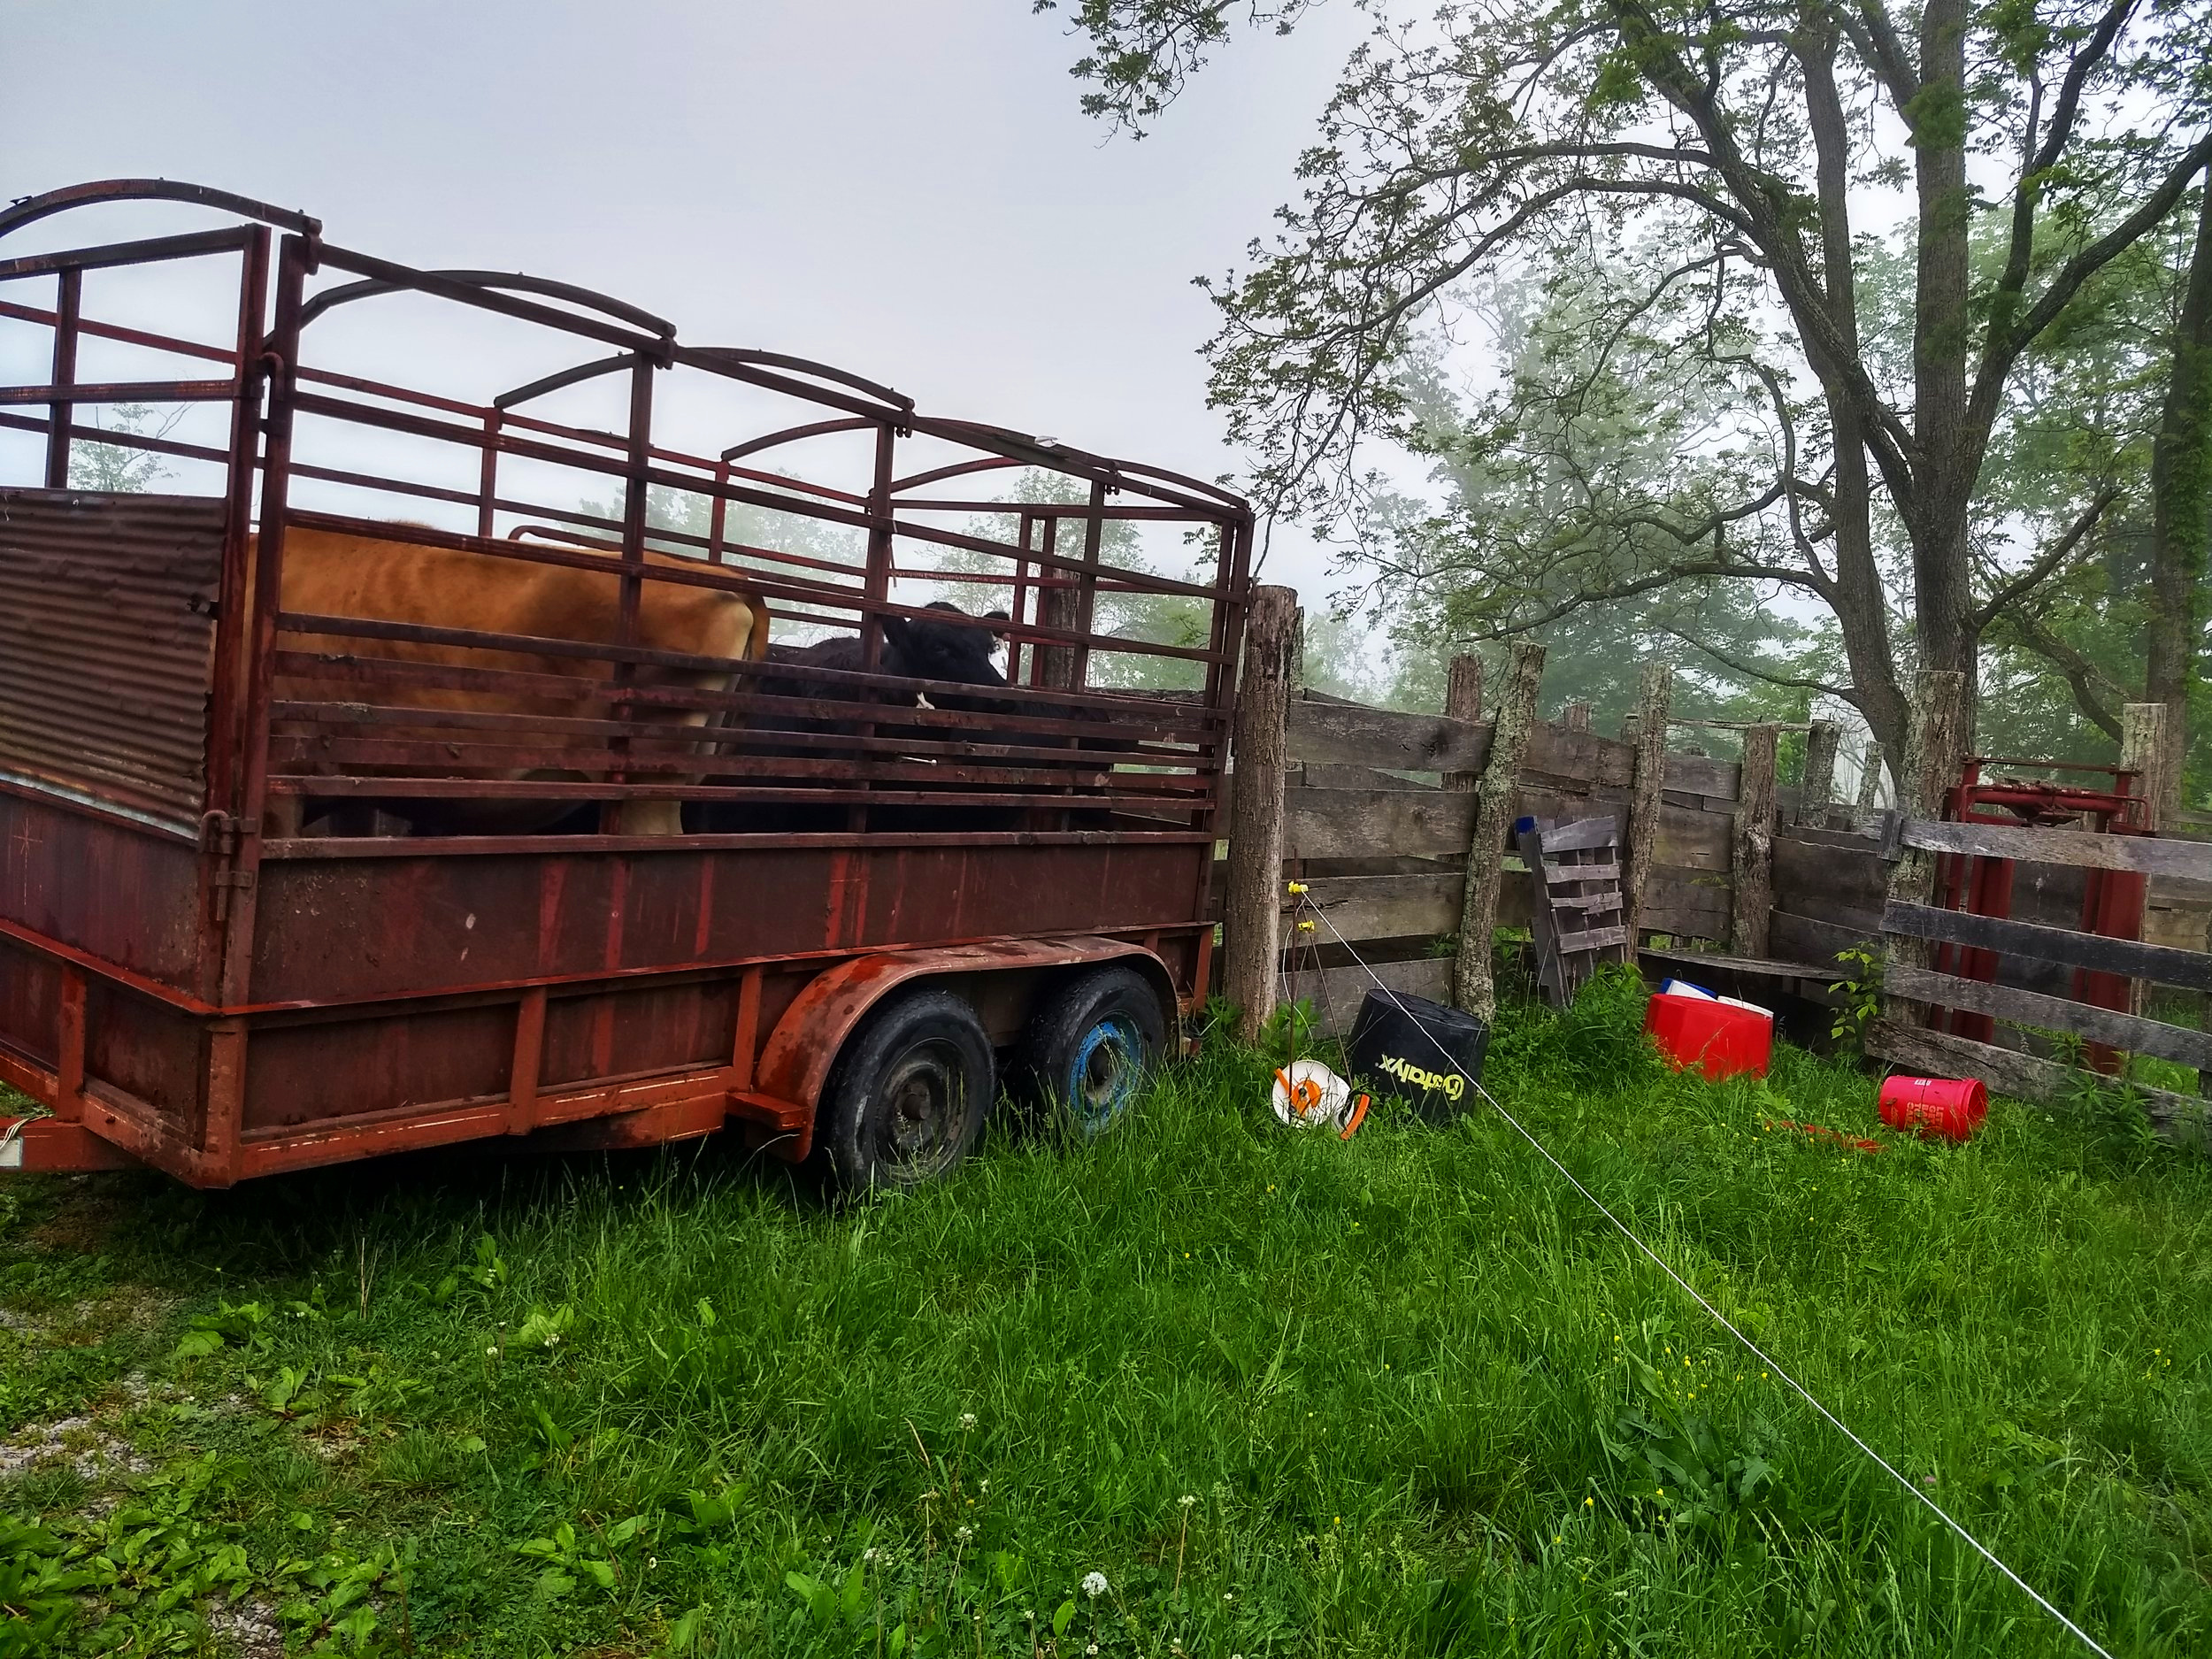 Loading Time - This month we had our Spring beef orders so we moved the cows down to the corral for loading. Everything went smoothly and we got all the cows going for beef loaded and everyone else settled back in the field.